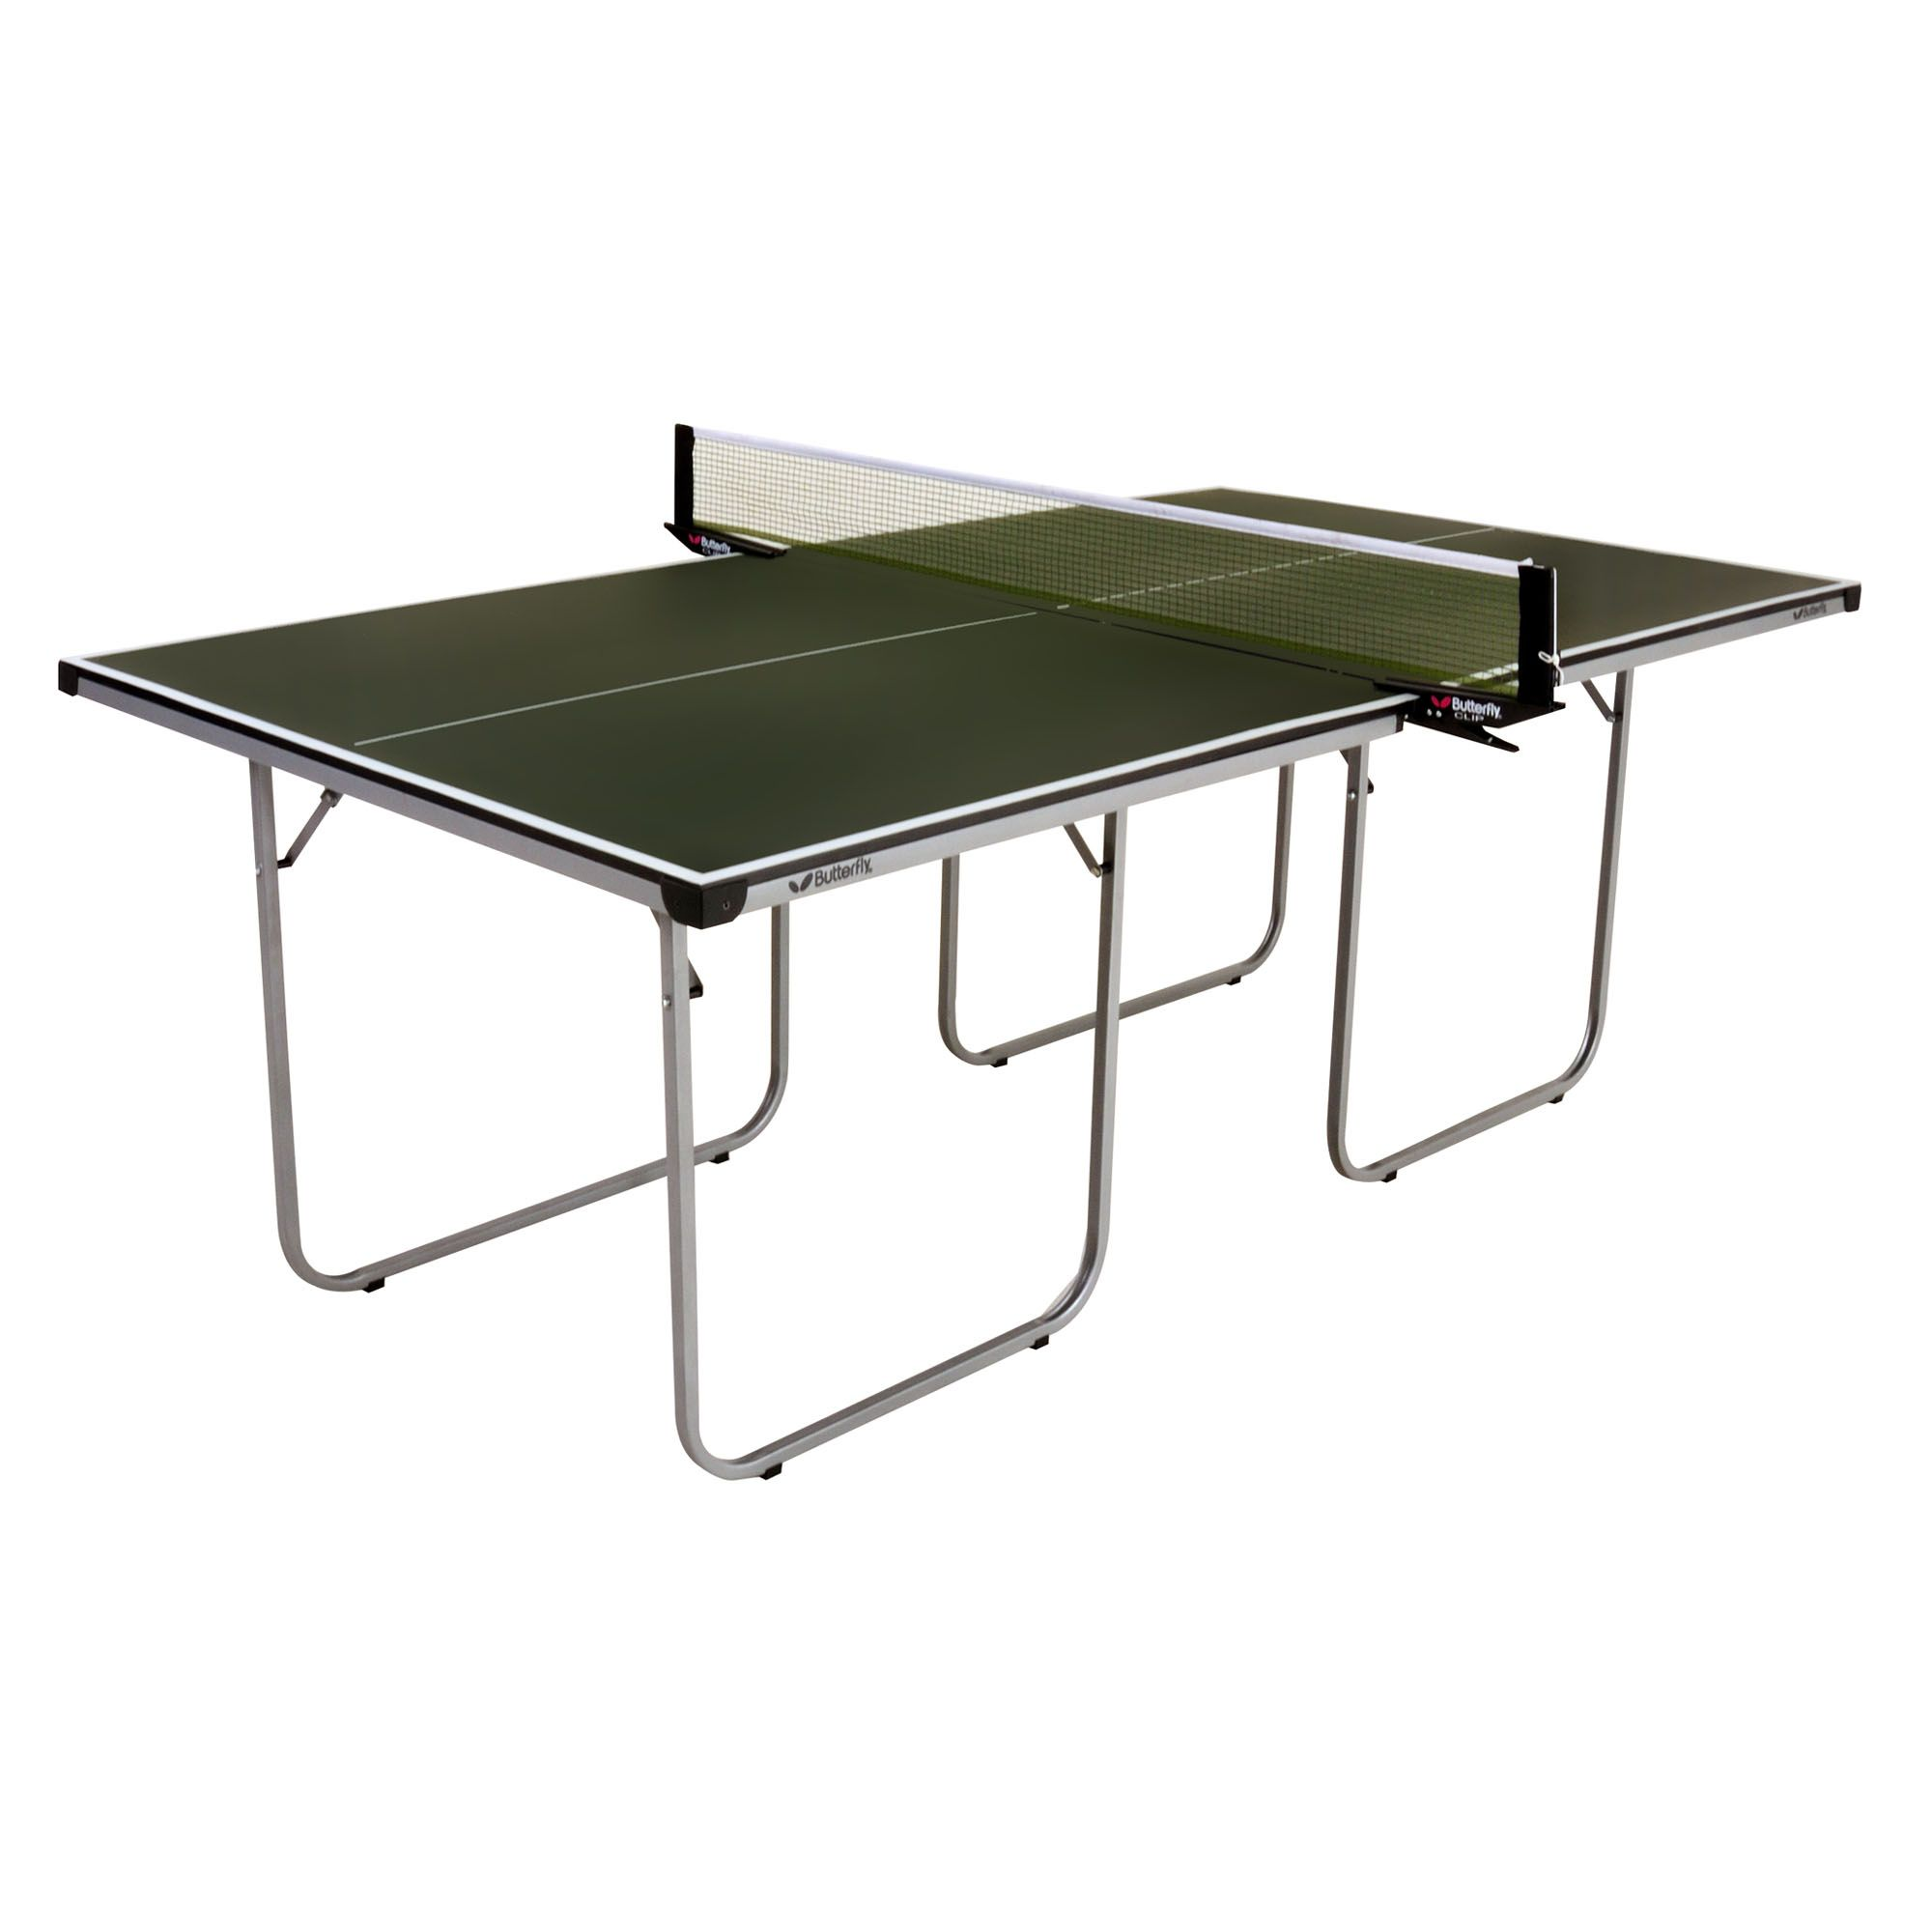 Butterfly junior table tennis table - Used outdoor table tennis tables for sale ...